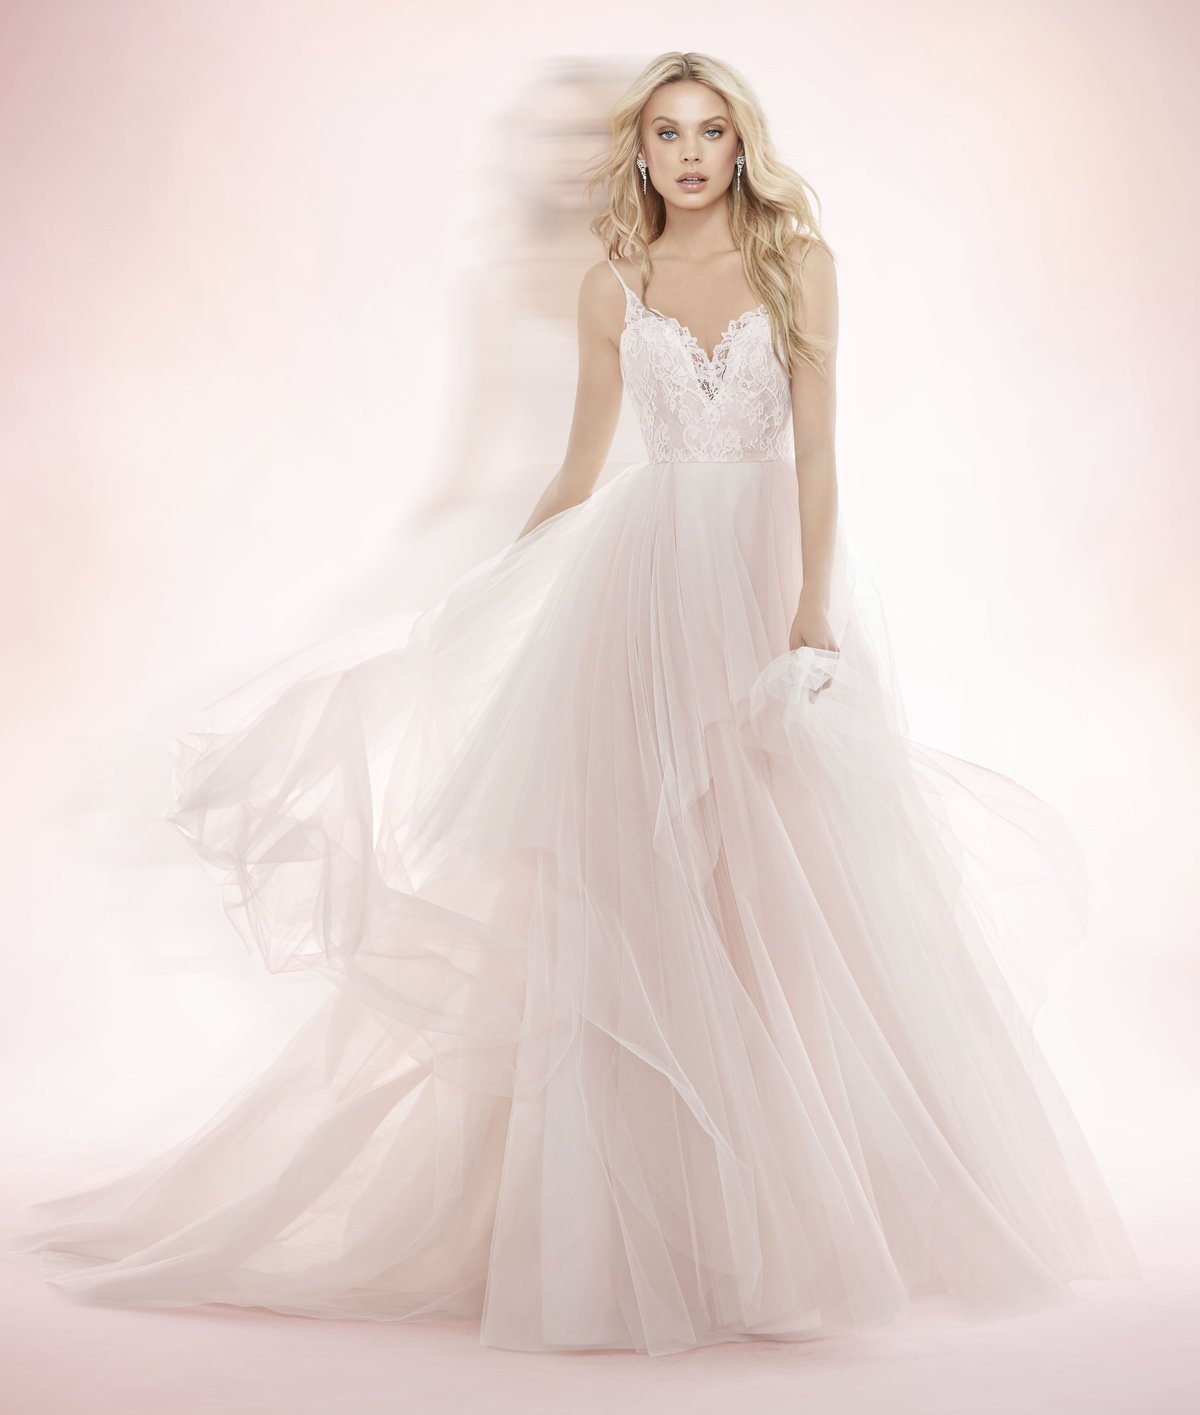 Wedding Dress Wedding Gowns: Bridal Gowns And Wedding Dresses By JLM Couture